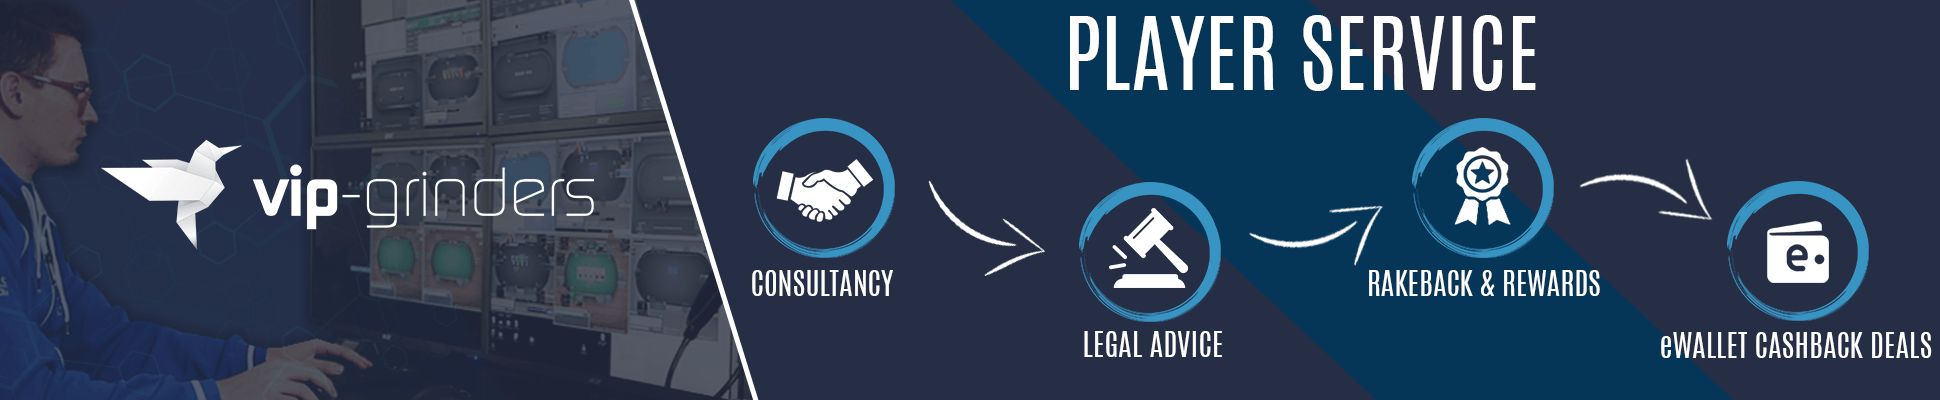 Player-Services-New-Banner-1940x400